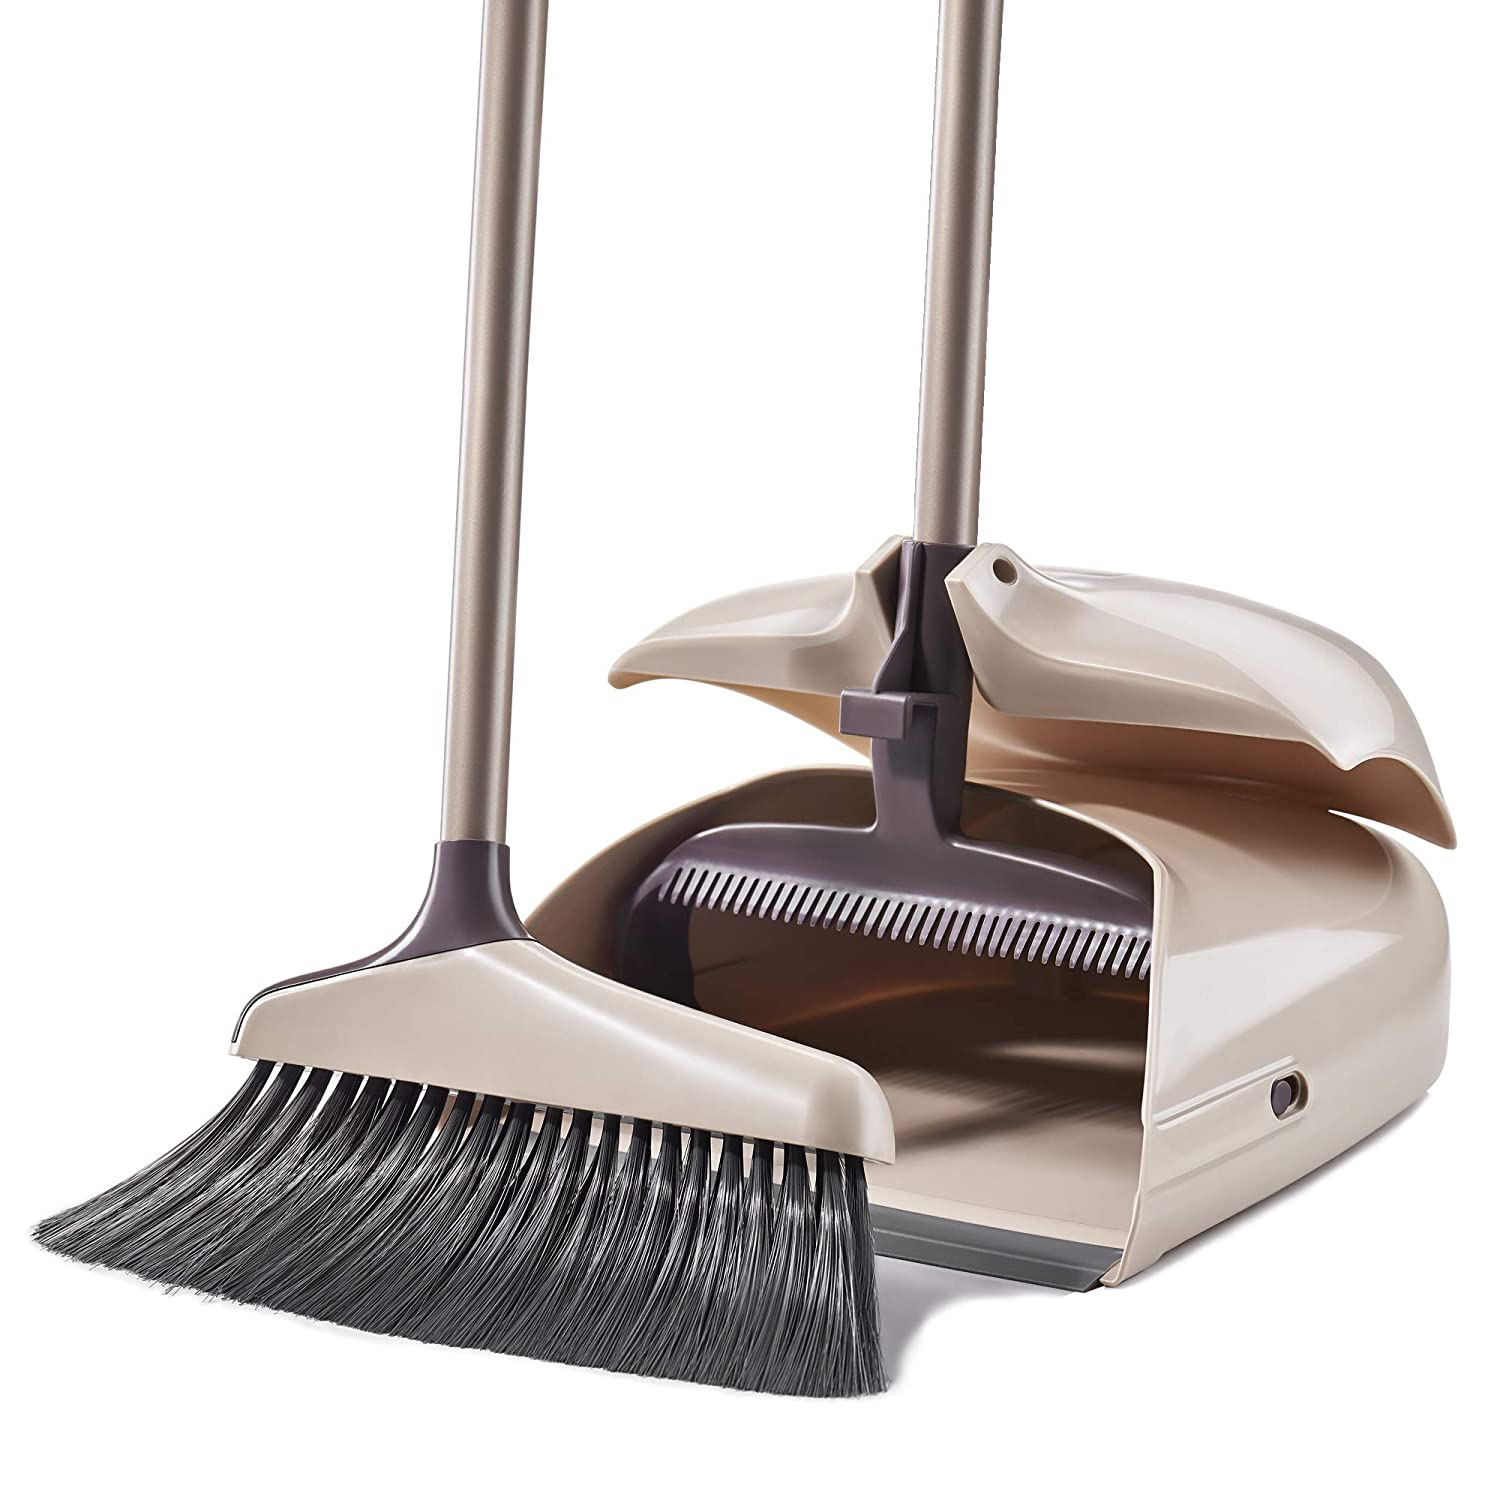 Broom and Dustpan Set - Large Upright Dustpan and Lobby Broom with 32-inch Handles - Dustpan Set for Sweeping Hard Floor Surfaces - Sweeper broom Indoor and Outdoor - Long hand brooms - Beige